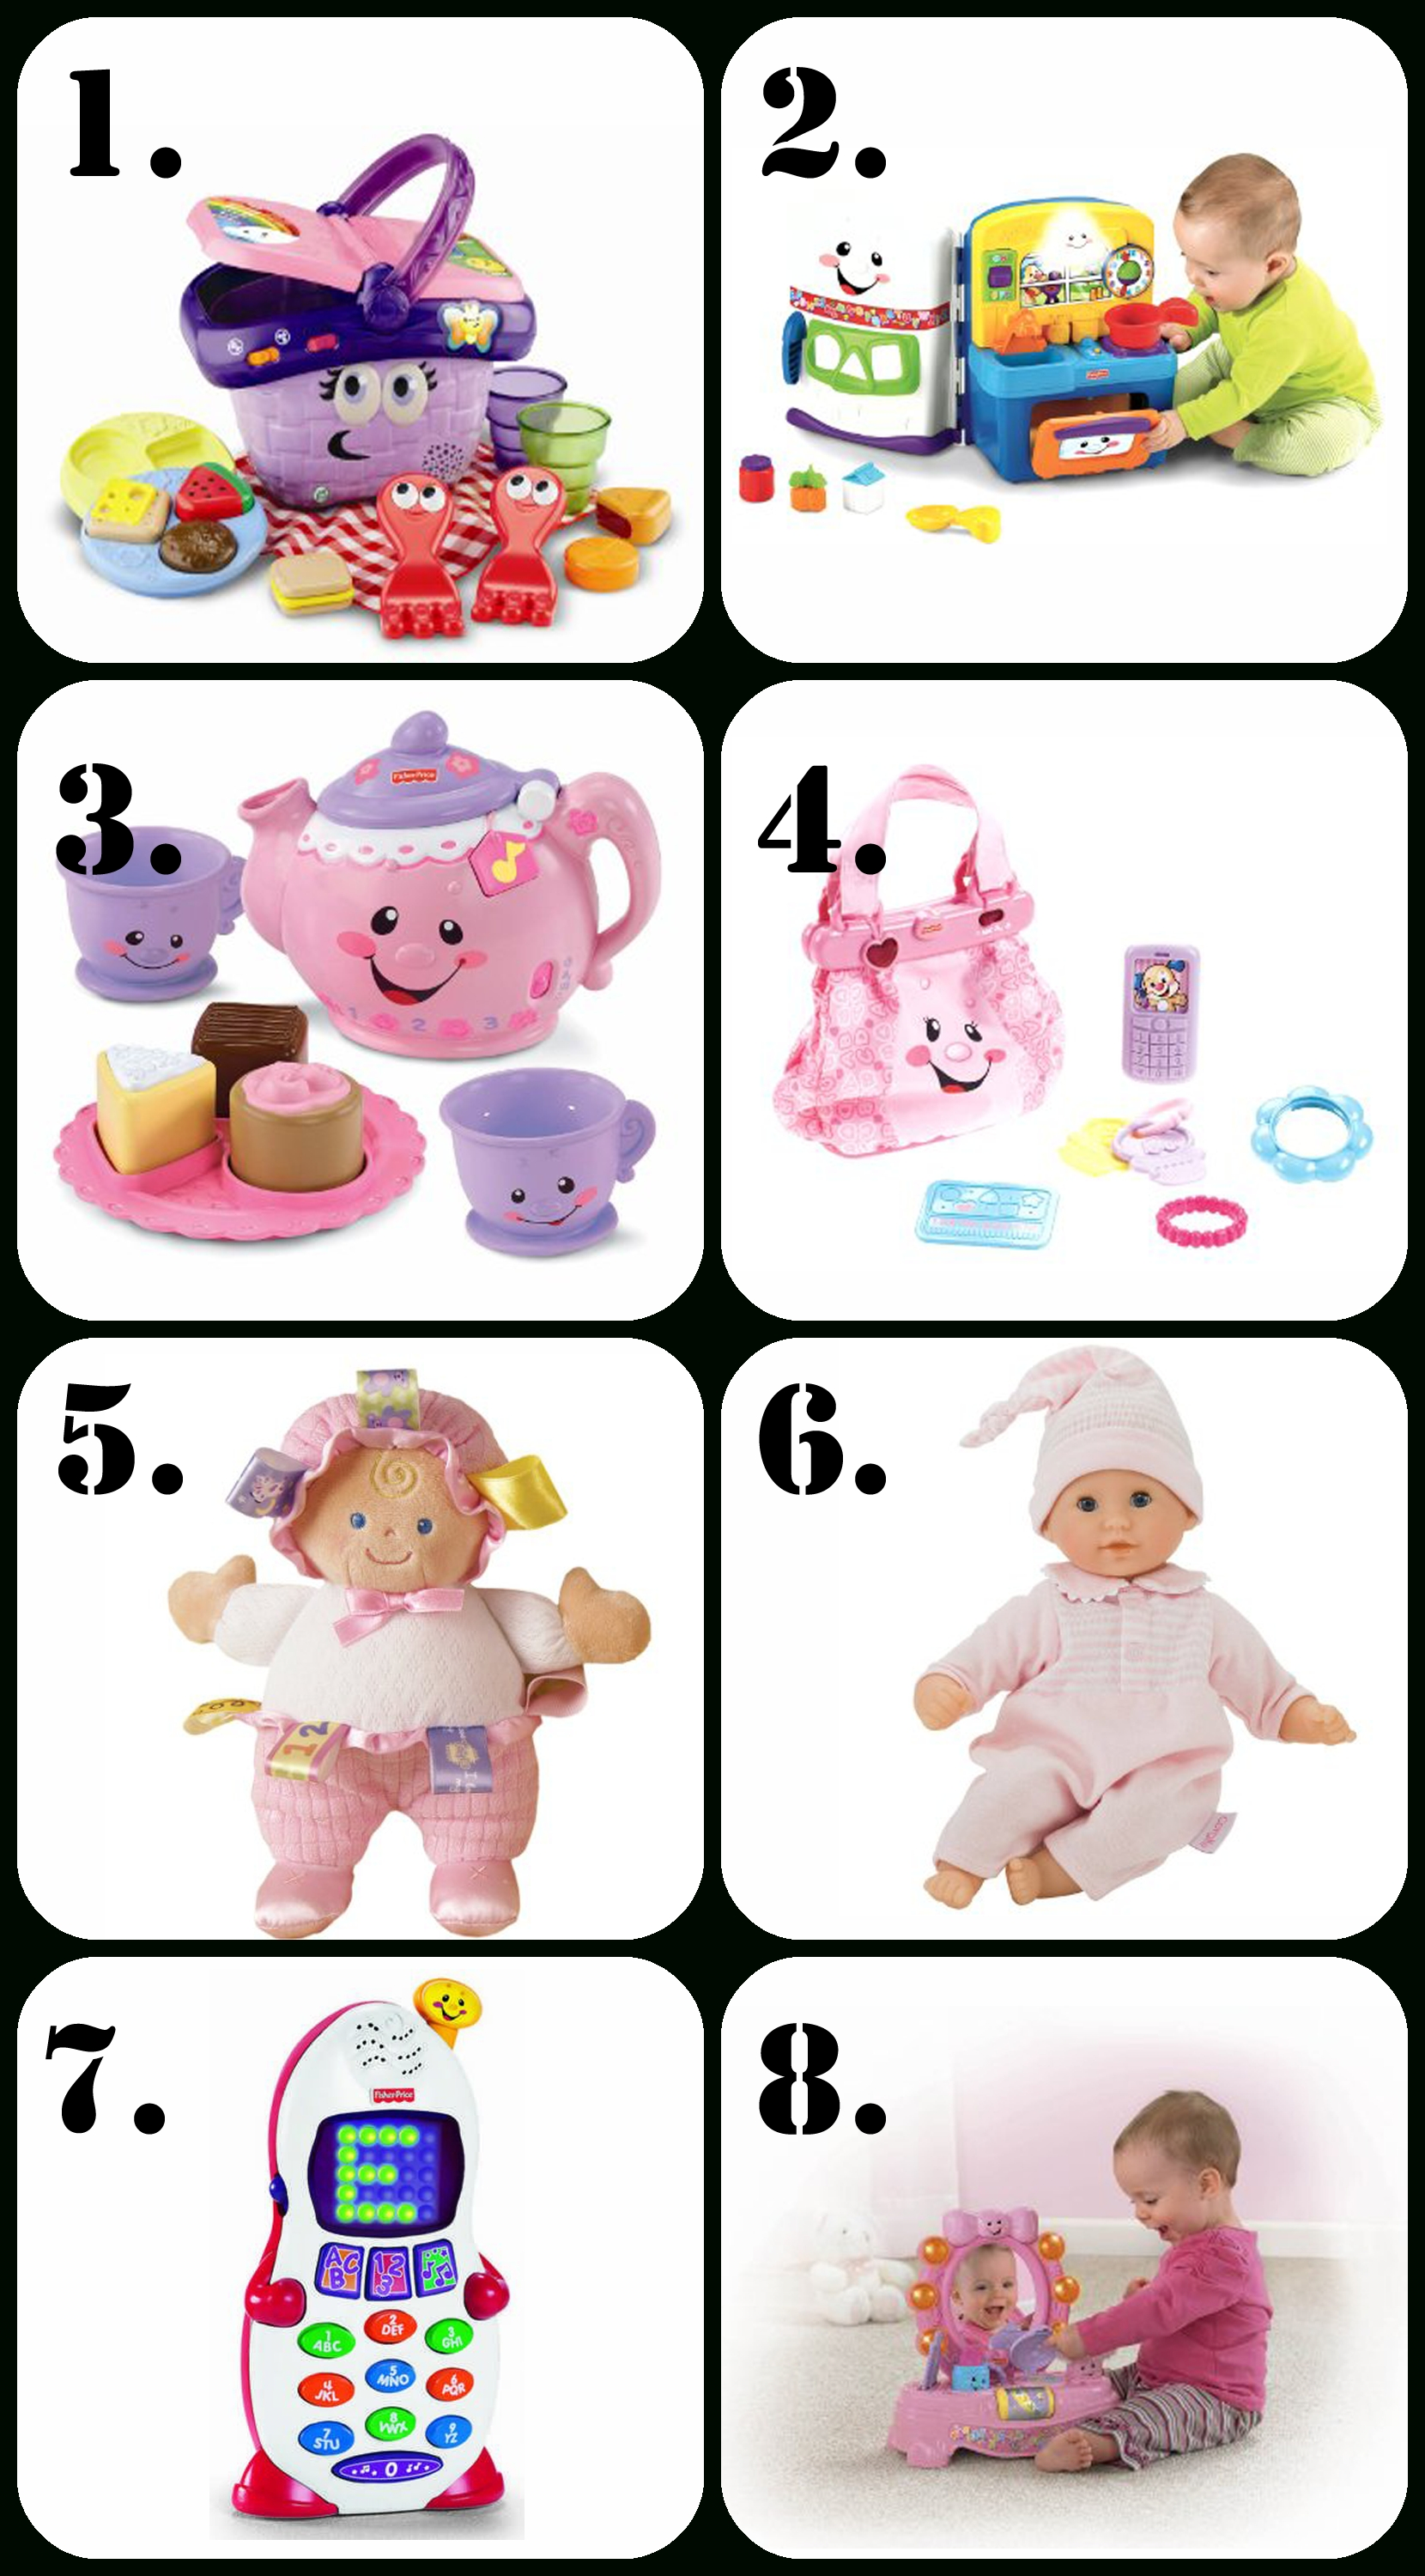 10 Best Gift Ideas For 1 Year Old Girl best birthday presents for a 1 year old creative home family 2020